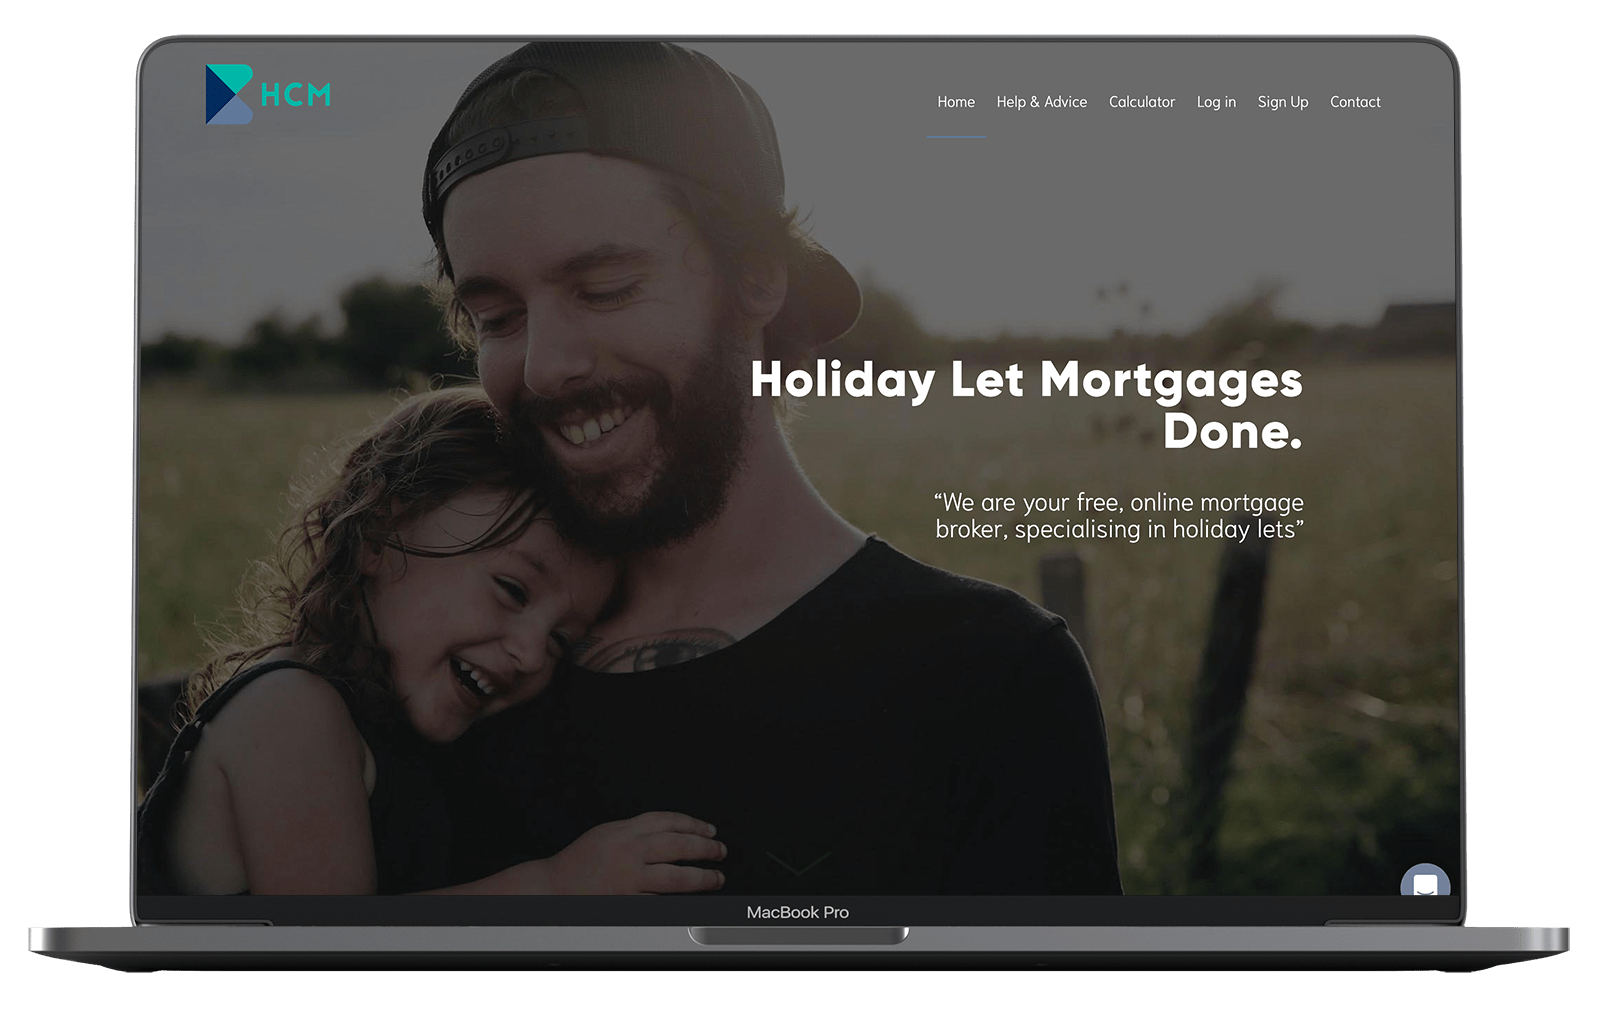 Holiday Cottage Mortgages website design on macbook